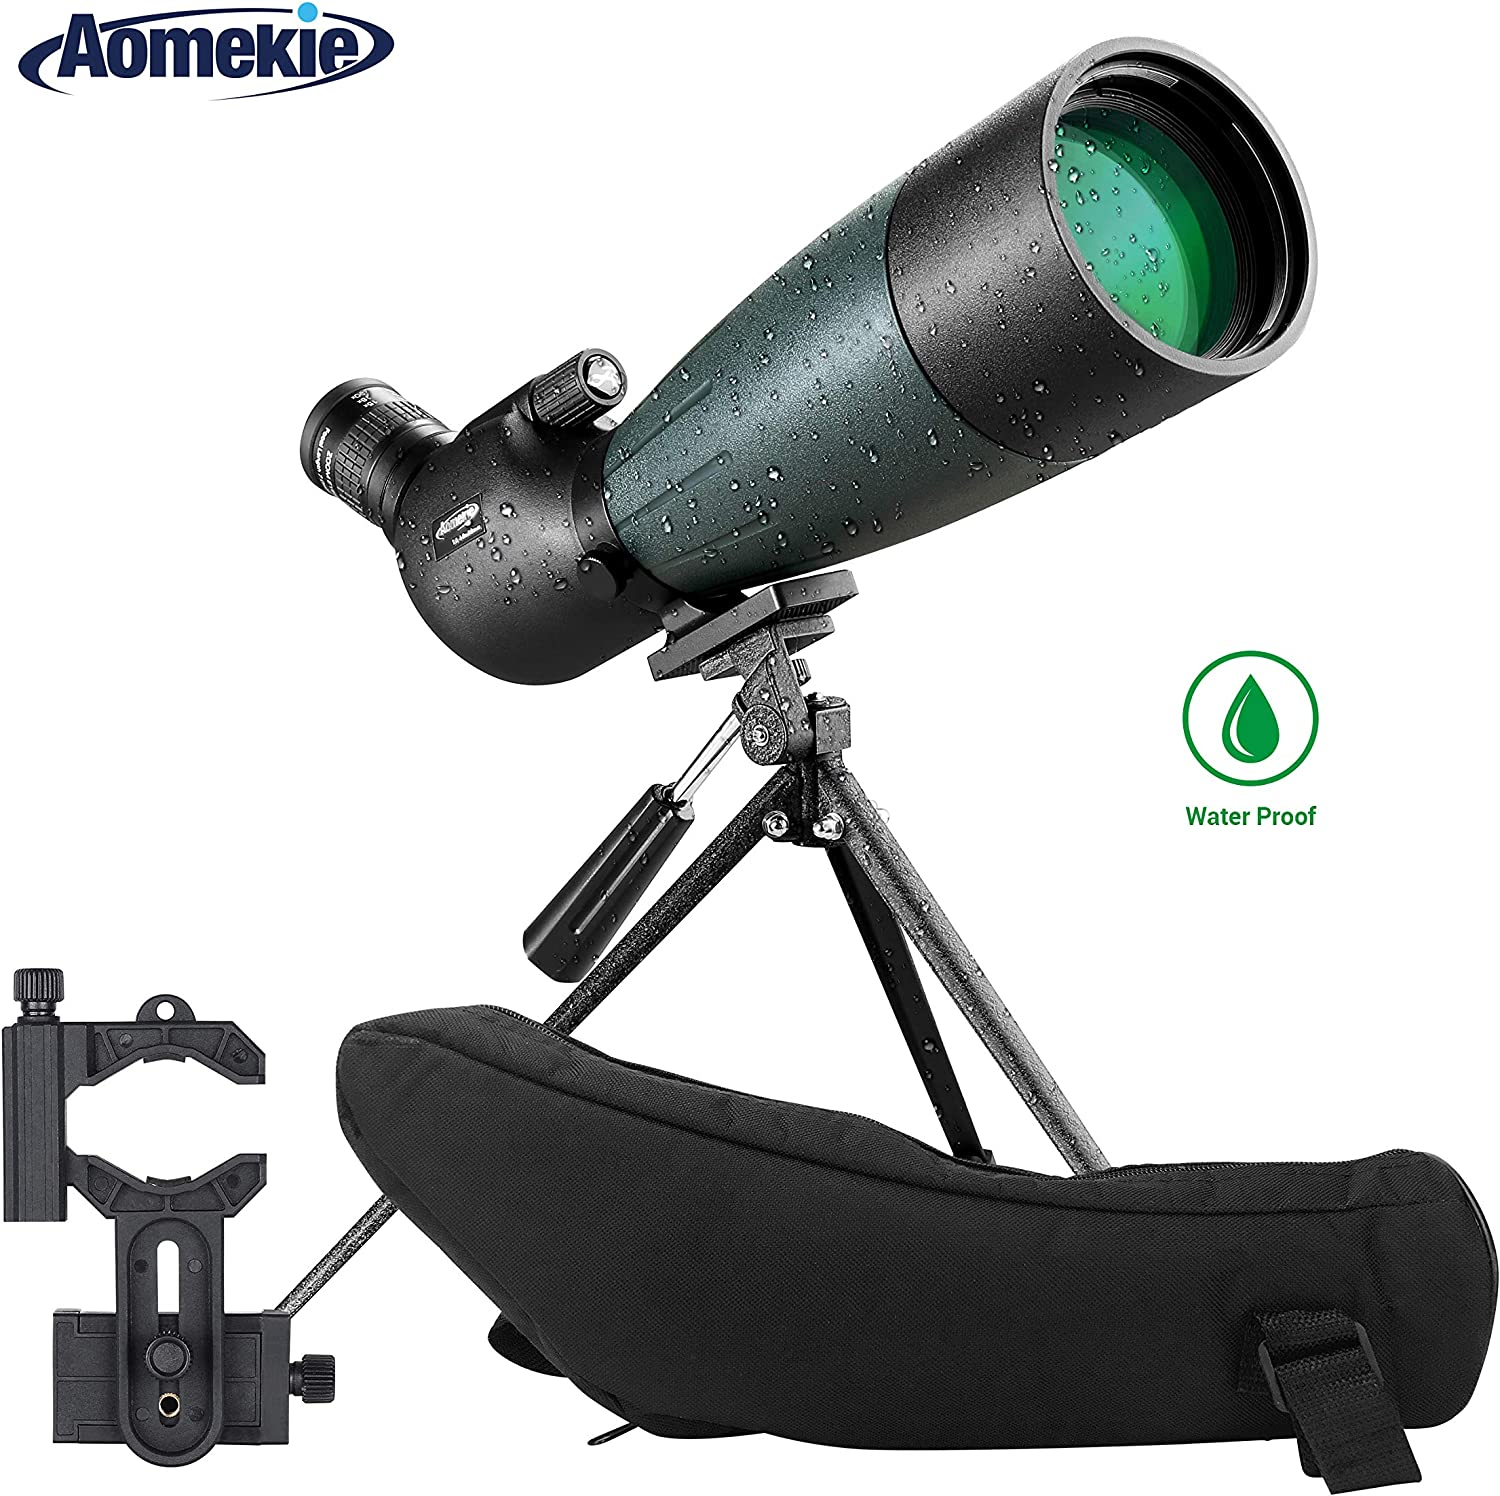 AOMEKIE Spotting Scope with Tripod Phone Adapter Case 20-60X80 for Target Shooting Hunting Bird Watching Waterproof Fogproof FMC BAK4 45 Angled Monocular Telescope